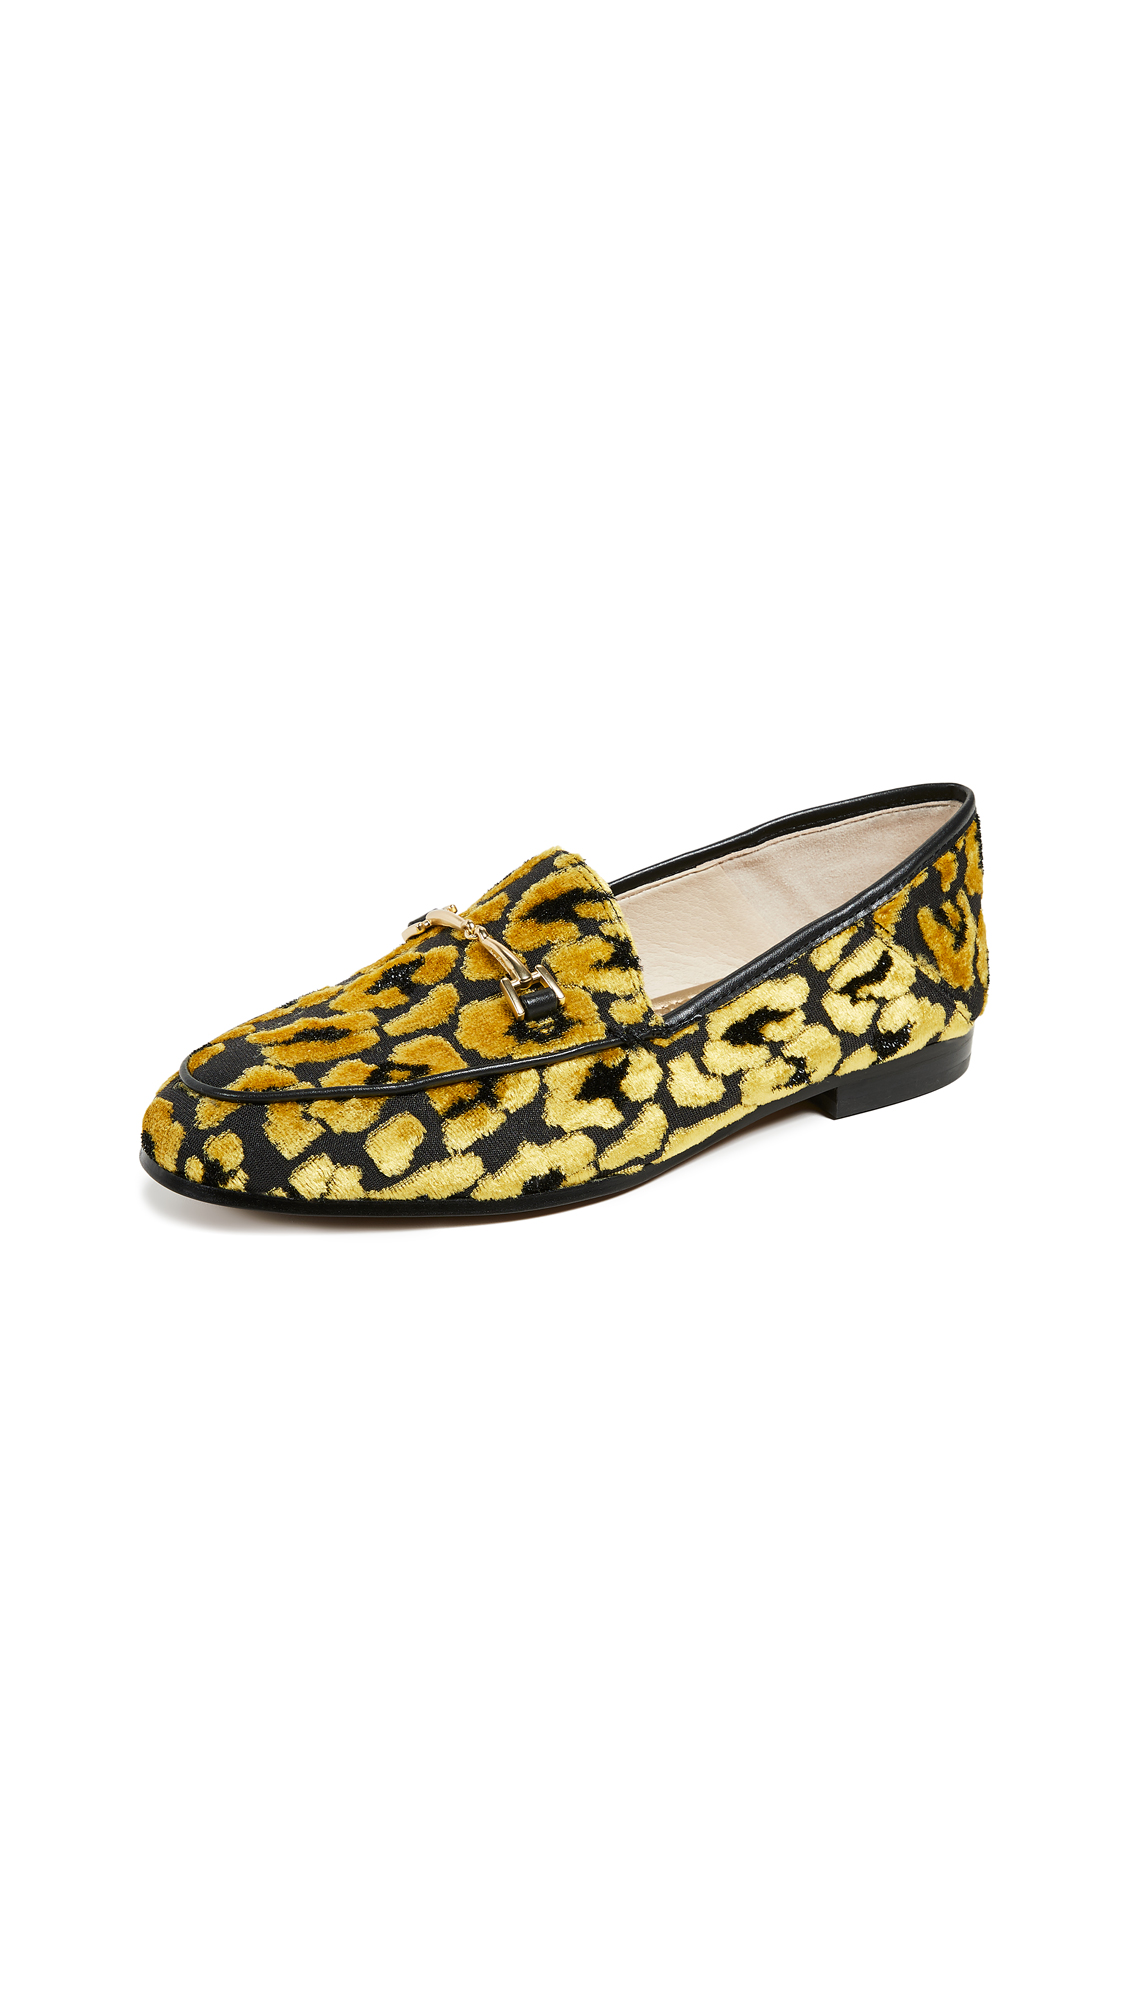 Sam Edelman Loraine Loafers - Tuscan Yellow Multi